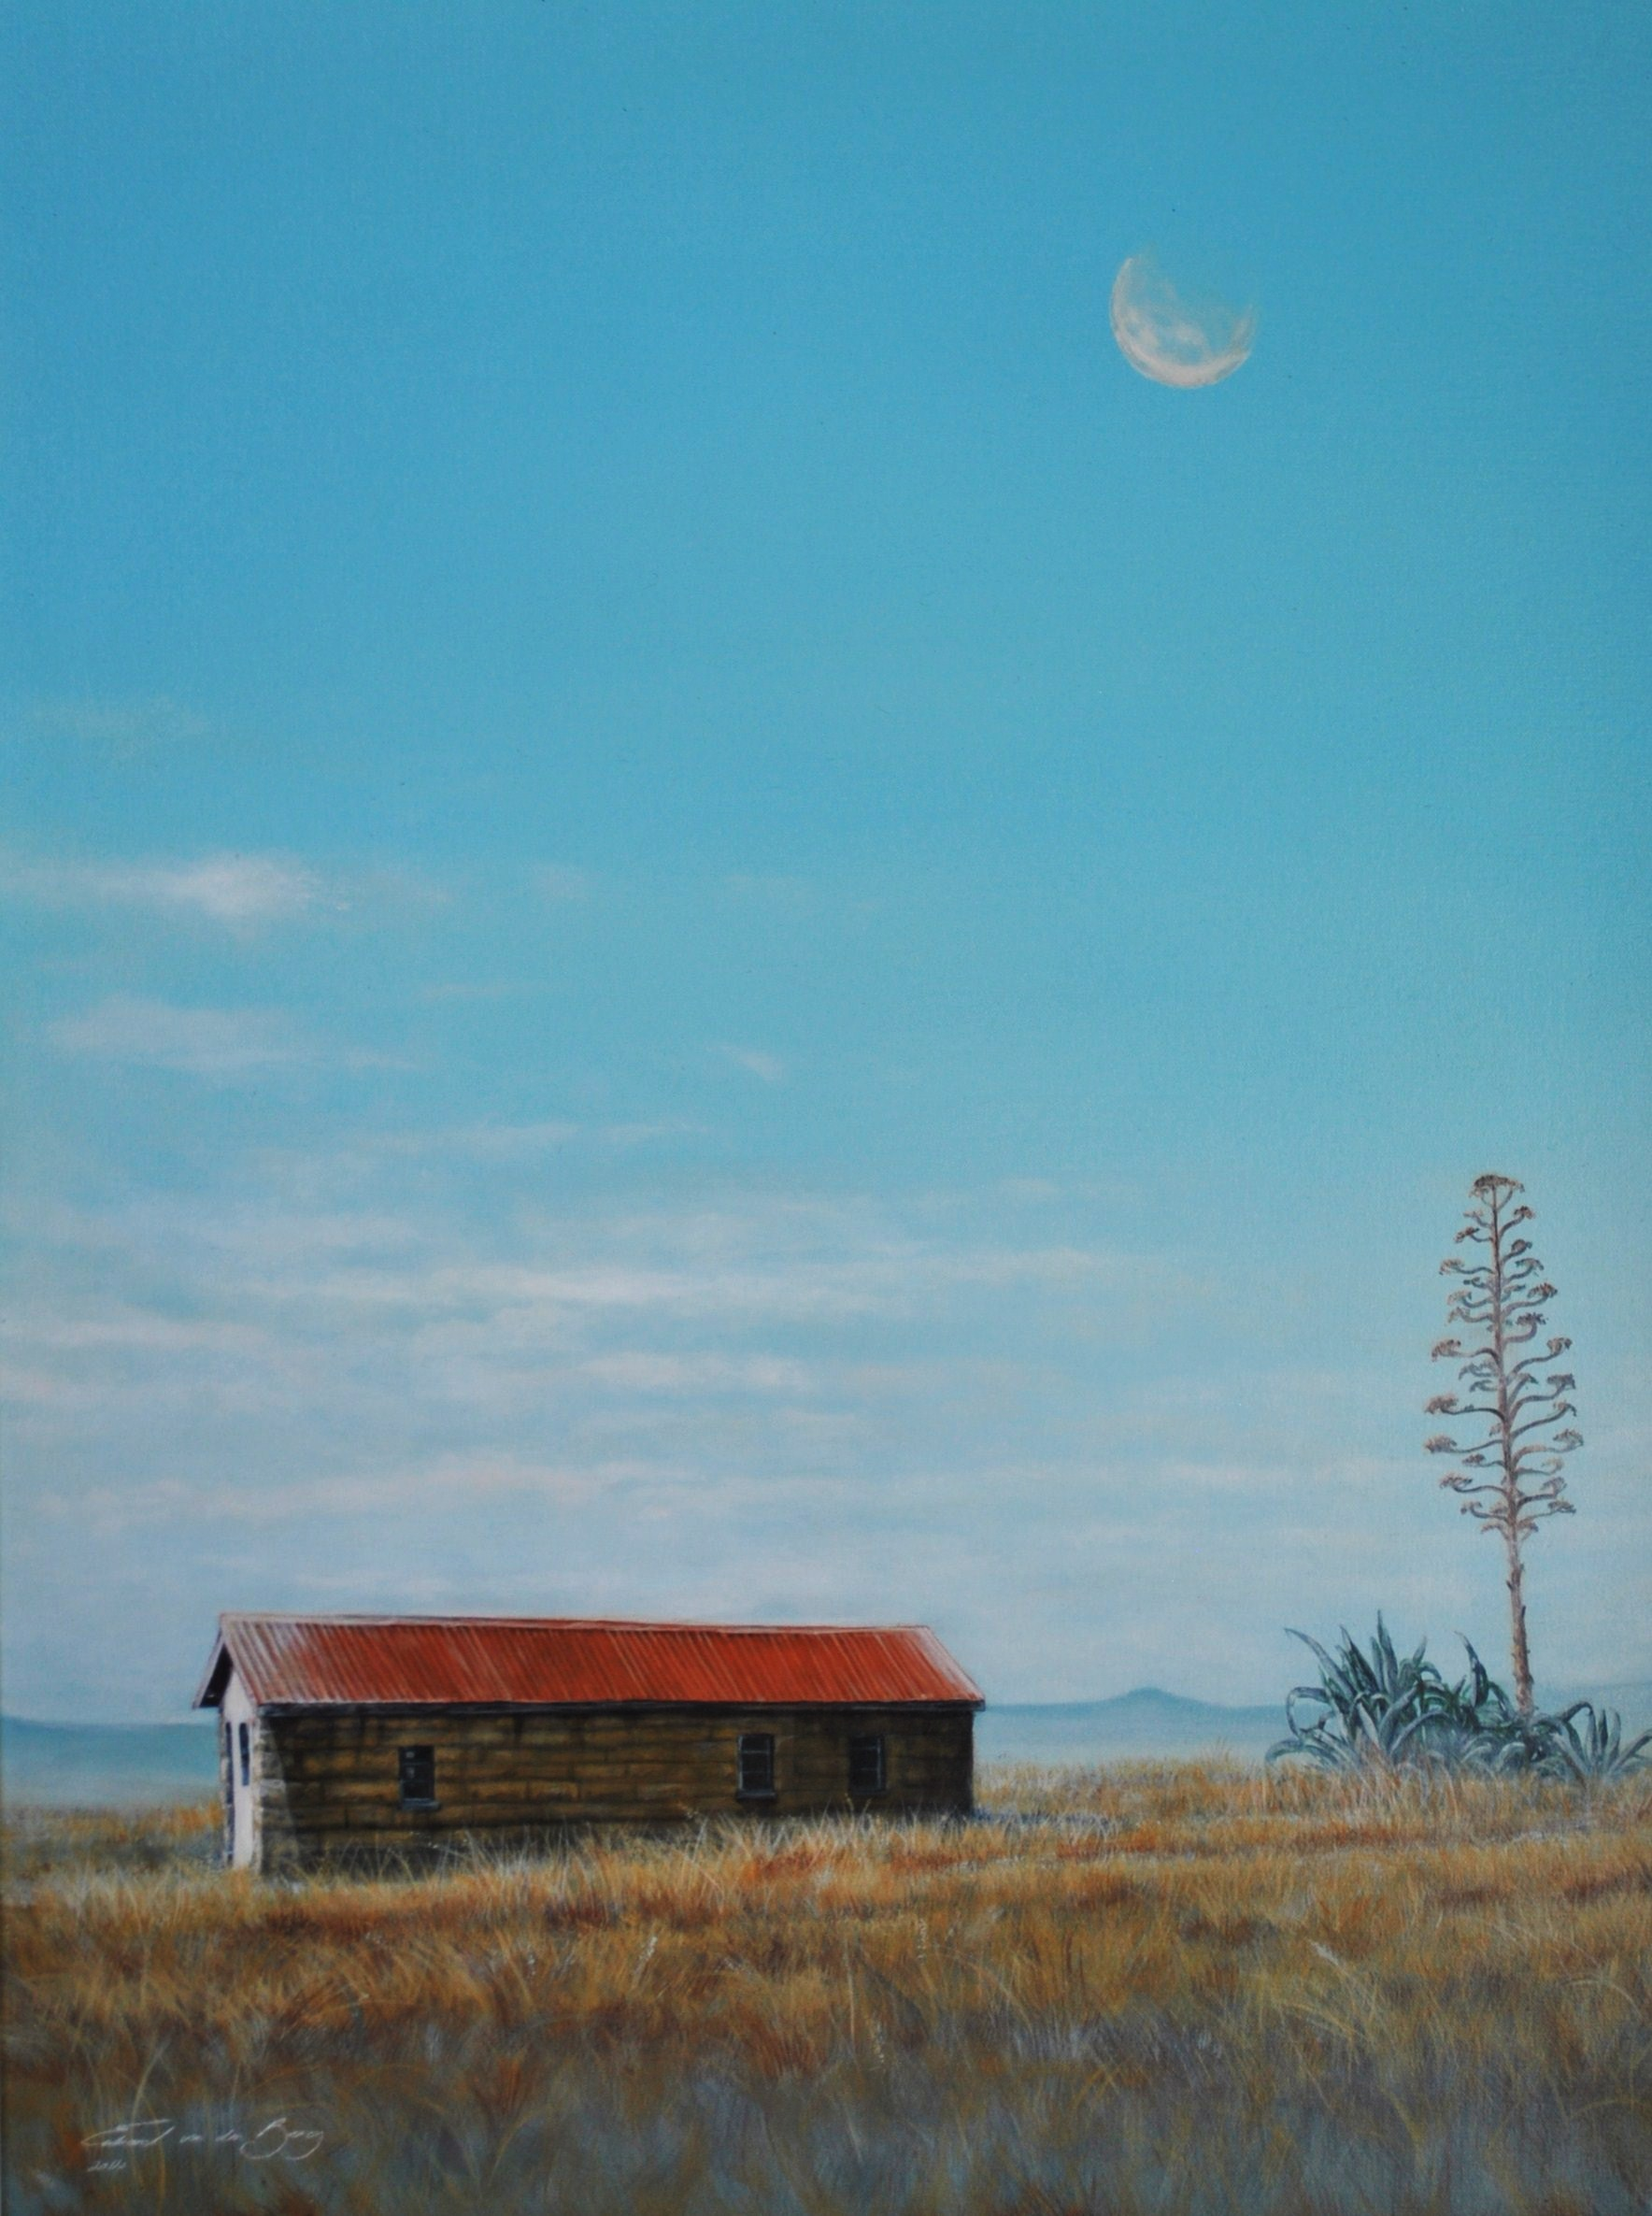 """The Red Barn"" (near Bethlehem to Paul Roux, N5), 90cm x 75cm, Acrylic on Canvas"